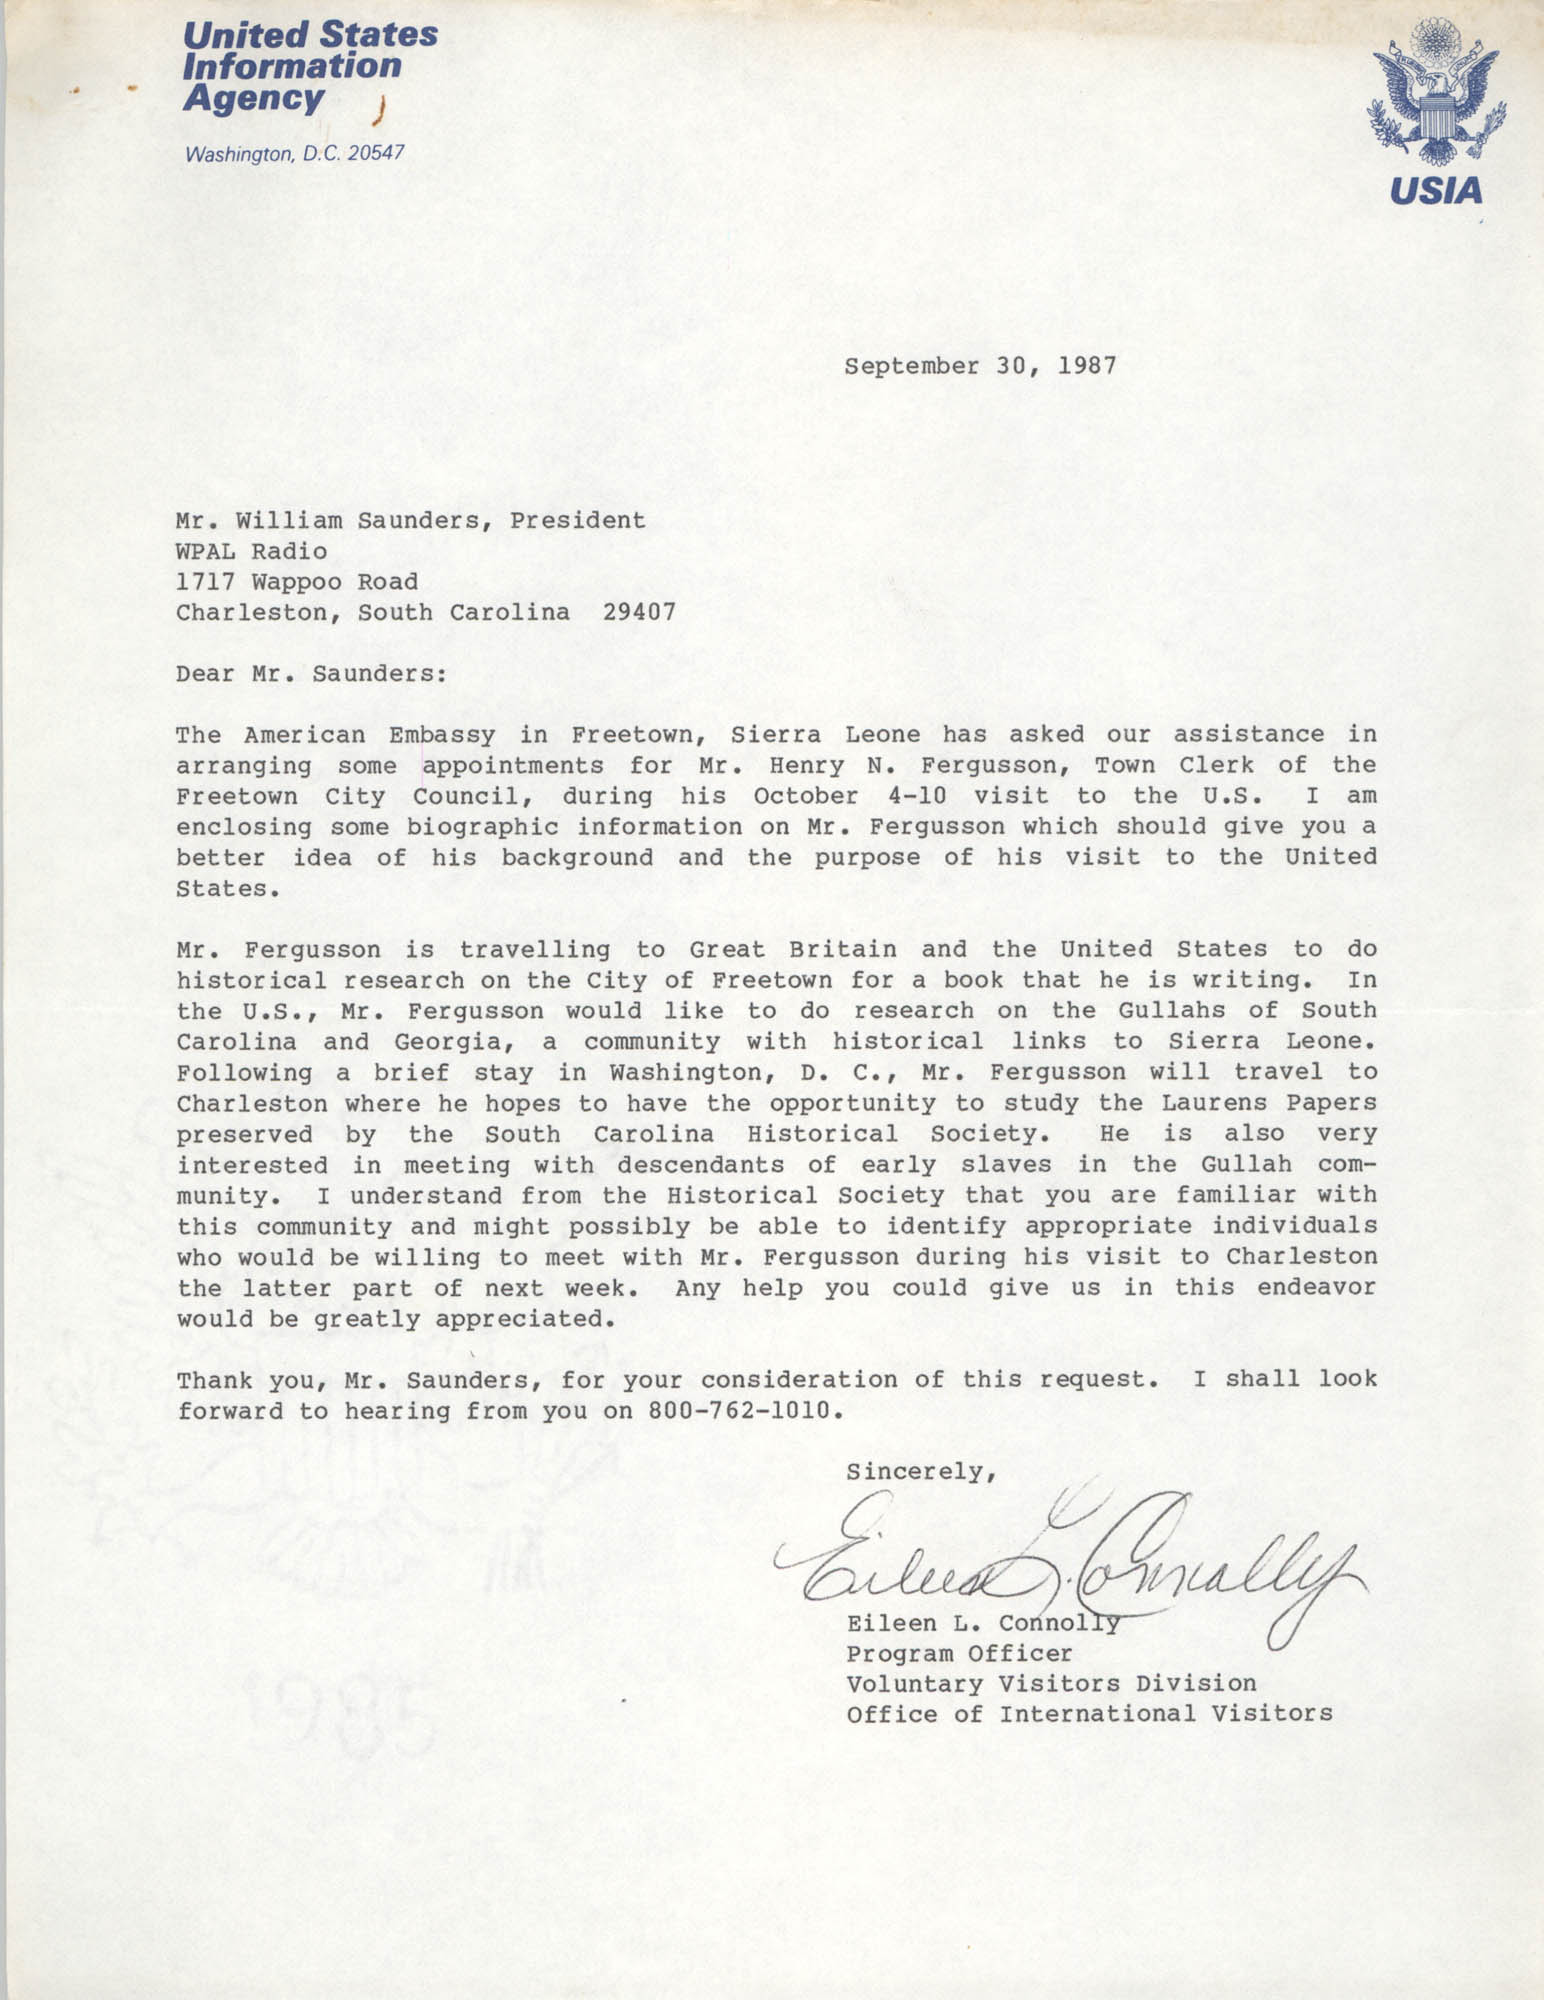 Letter from Eileen L. Connolly to William Saunders, September 30, 1987